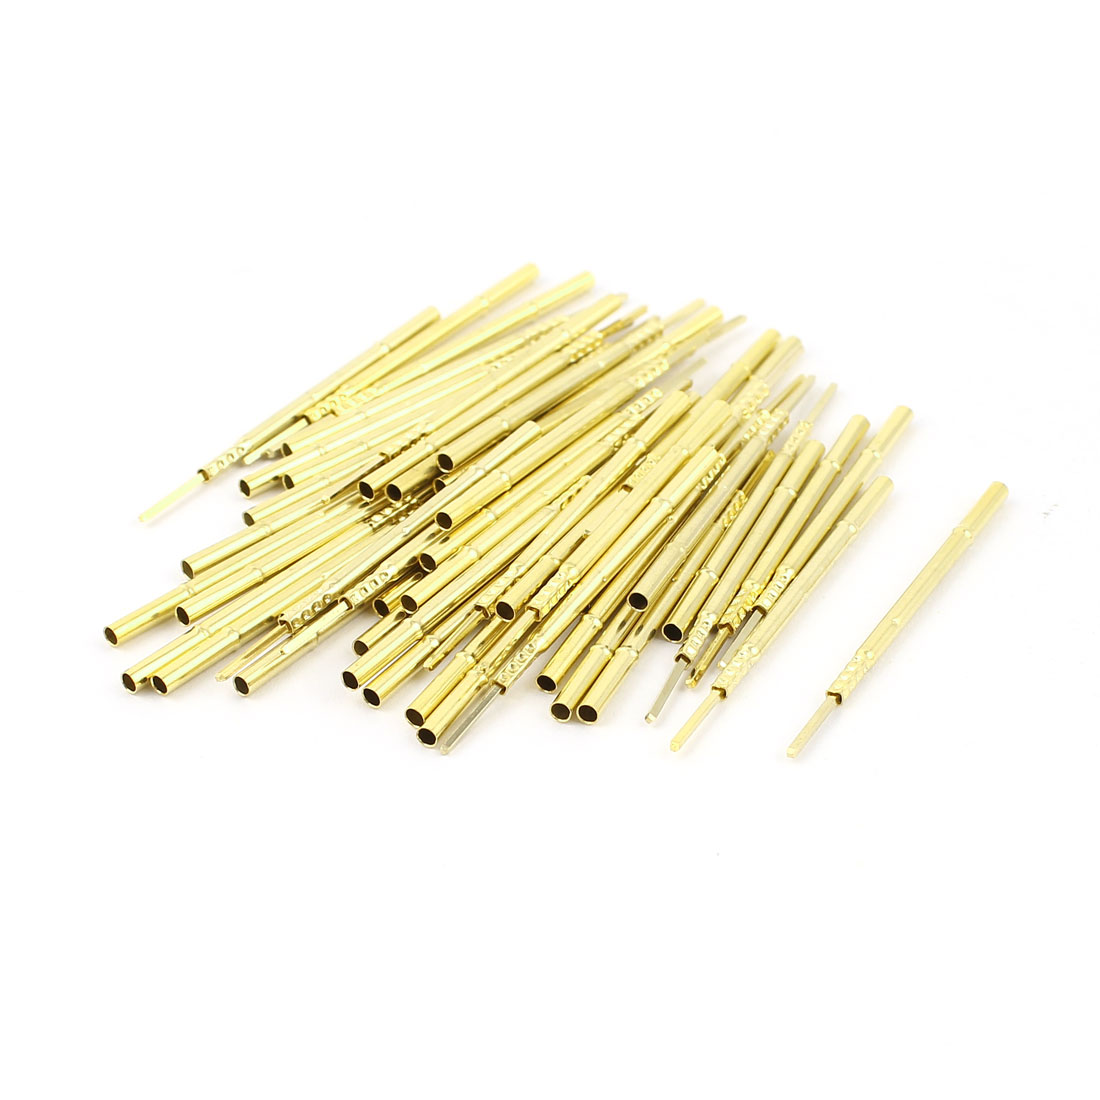 50 Pcs R100-4W 1.7mm Dia Testing Probe Pin Receptacles Gold Tone